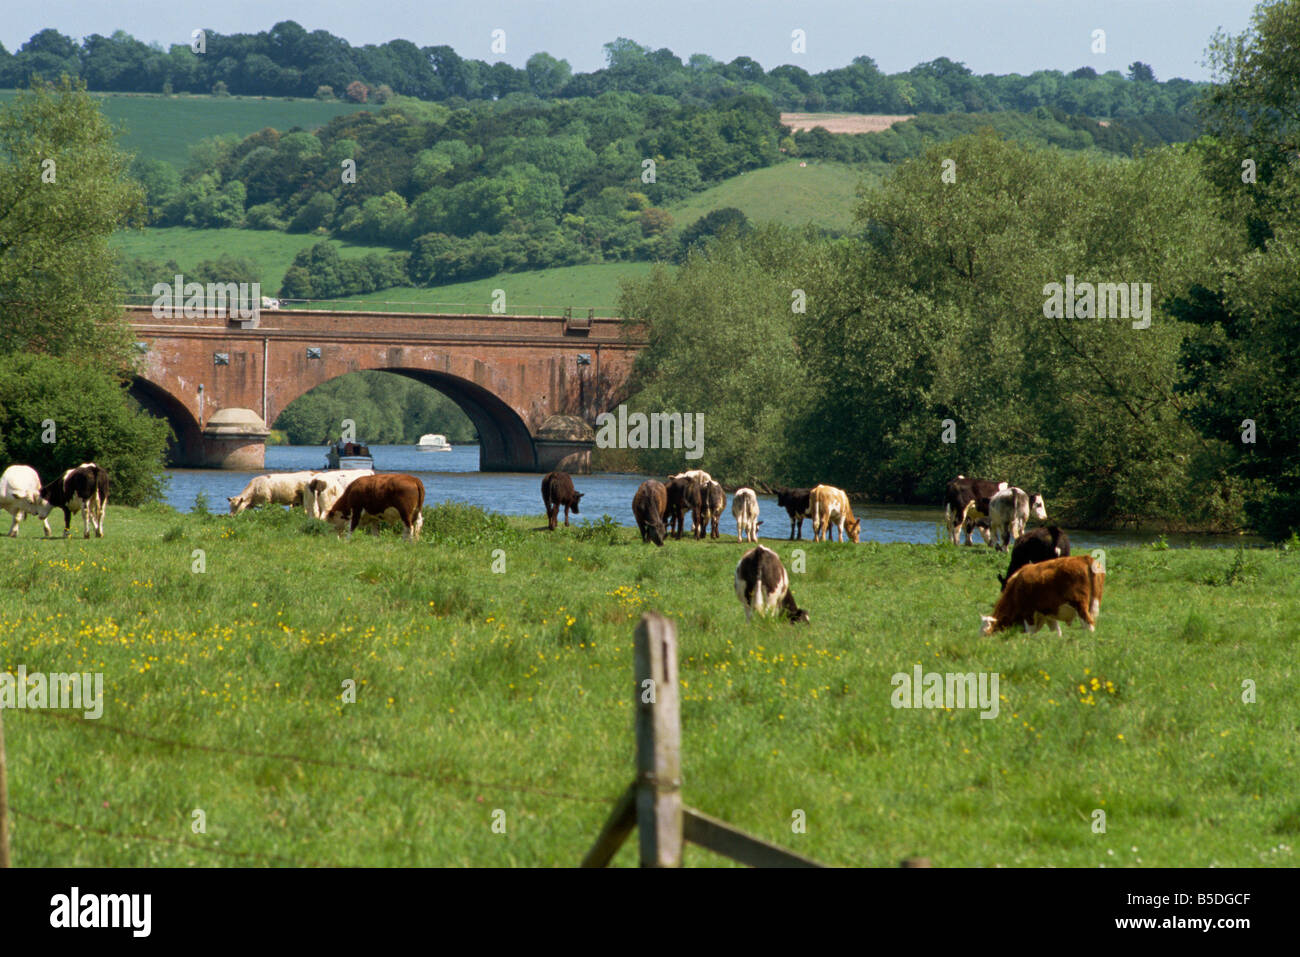 Cattle beside the River Thames Oxfordshire England United Kingdom Europe - Stock Image